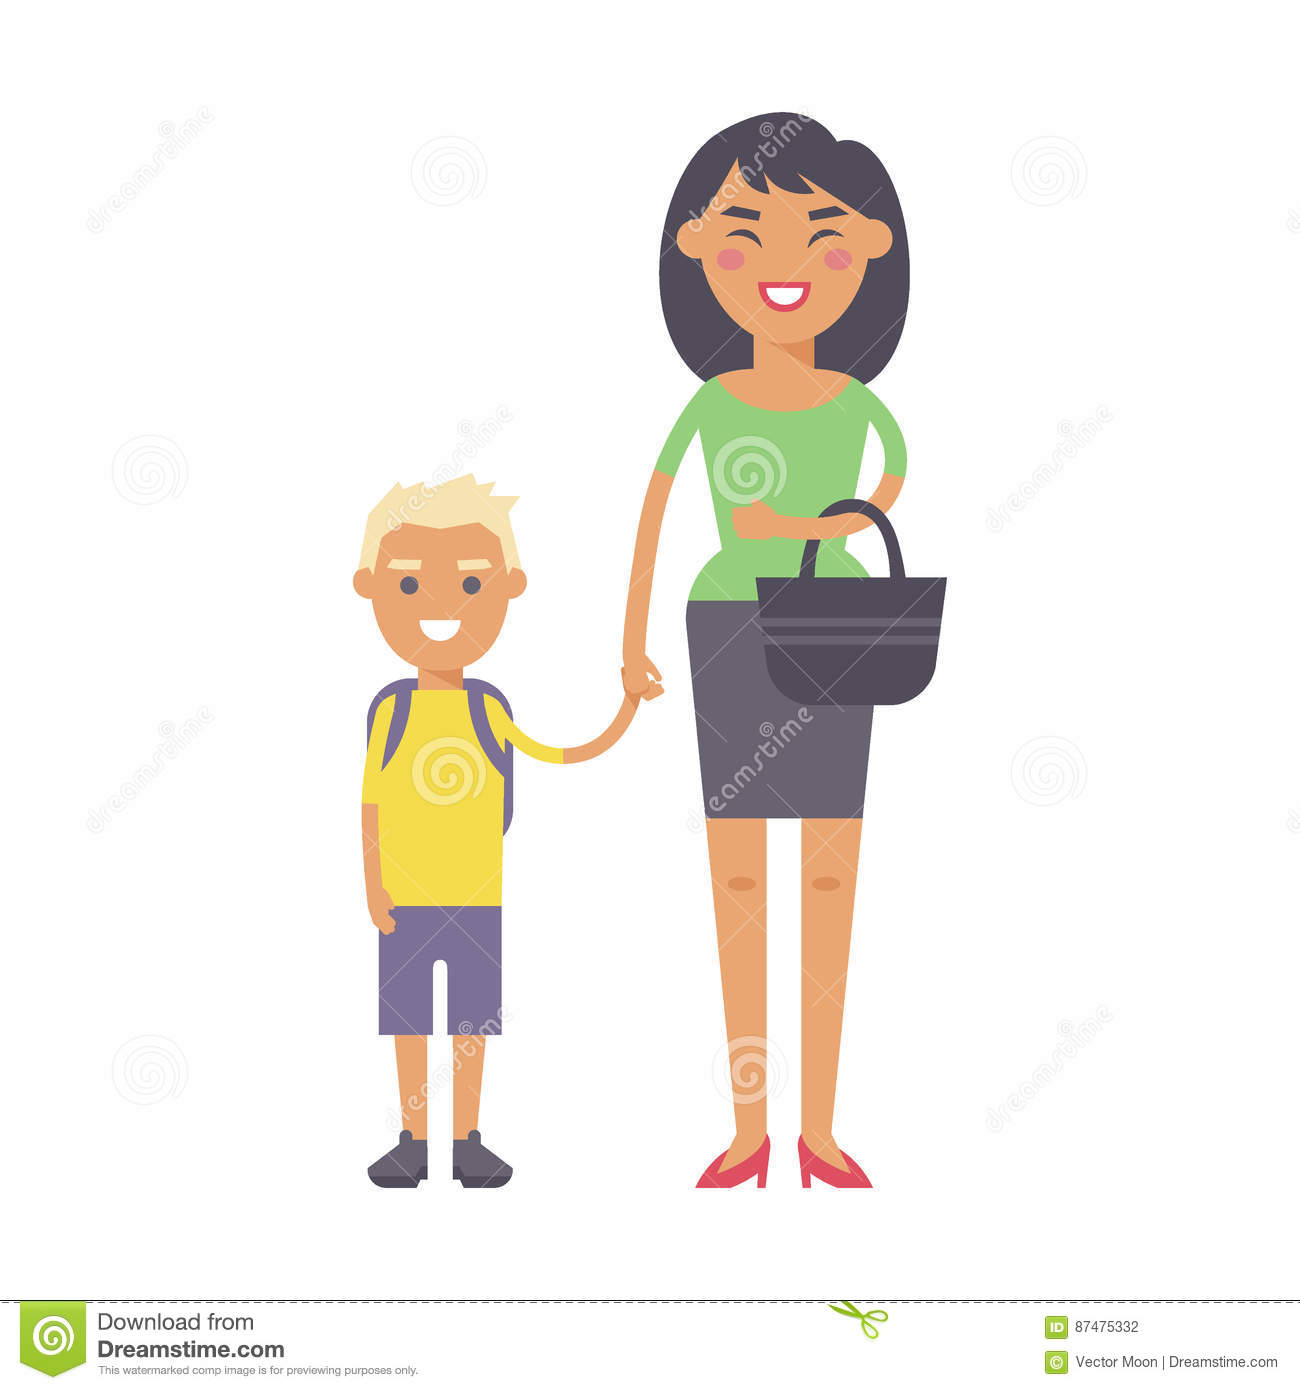 Family people adult happiness smiling mother with son togetherness parenting concept and casual parent, cheerful